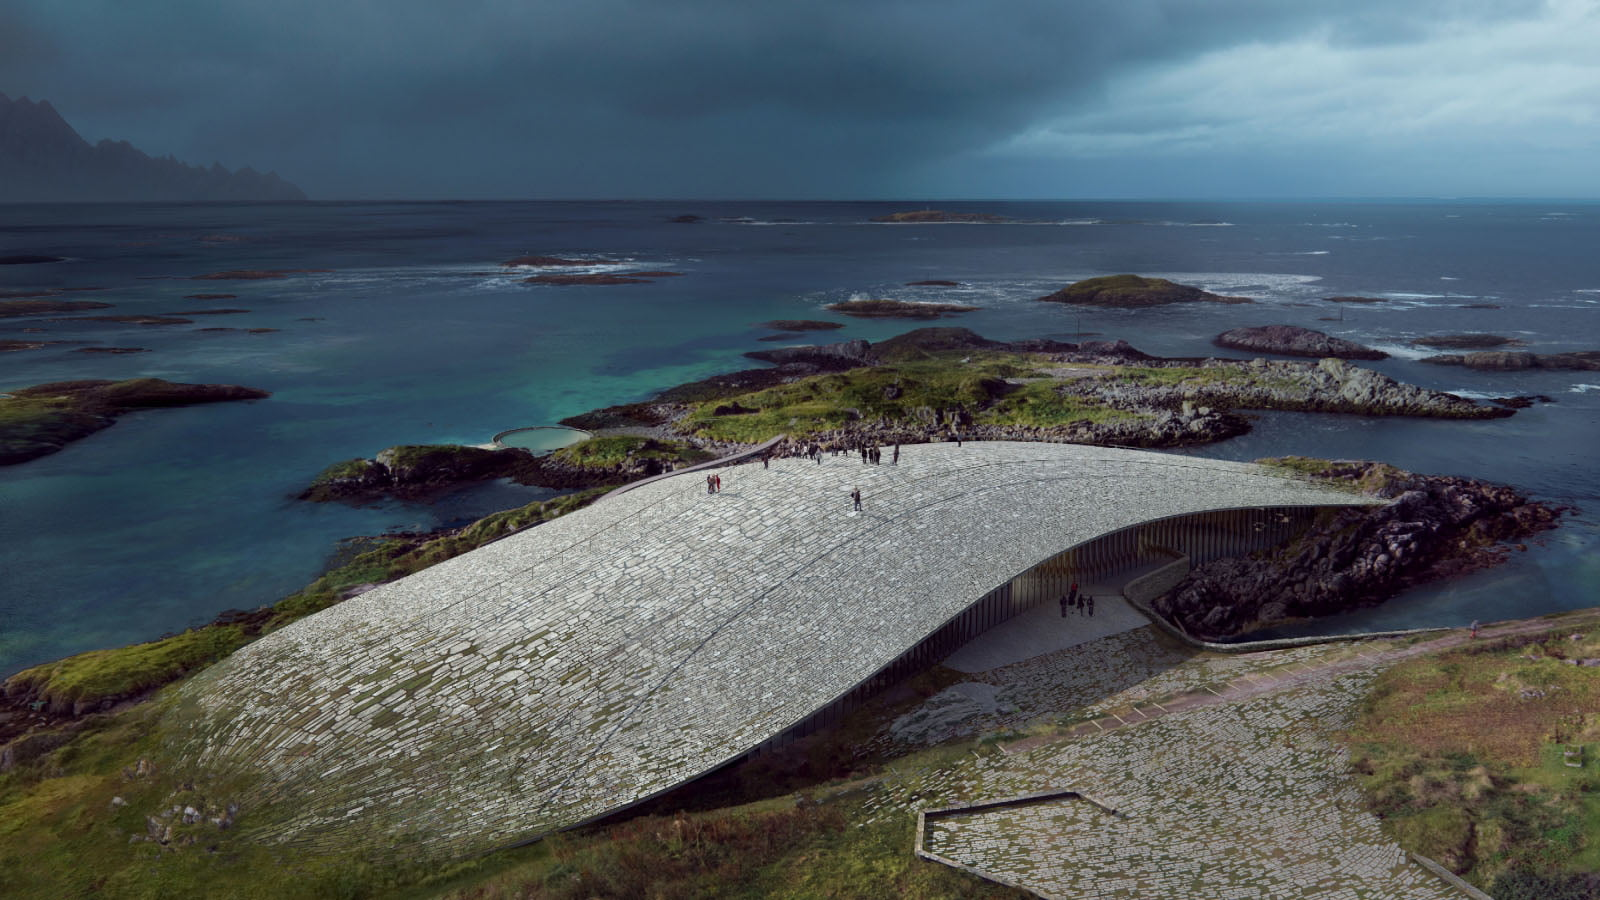 Design of The Whale visitor centre in Northern Norway